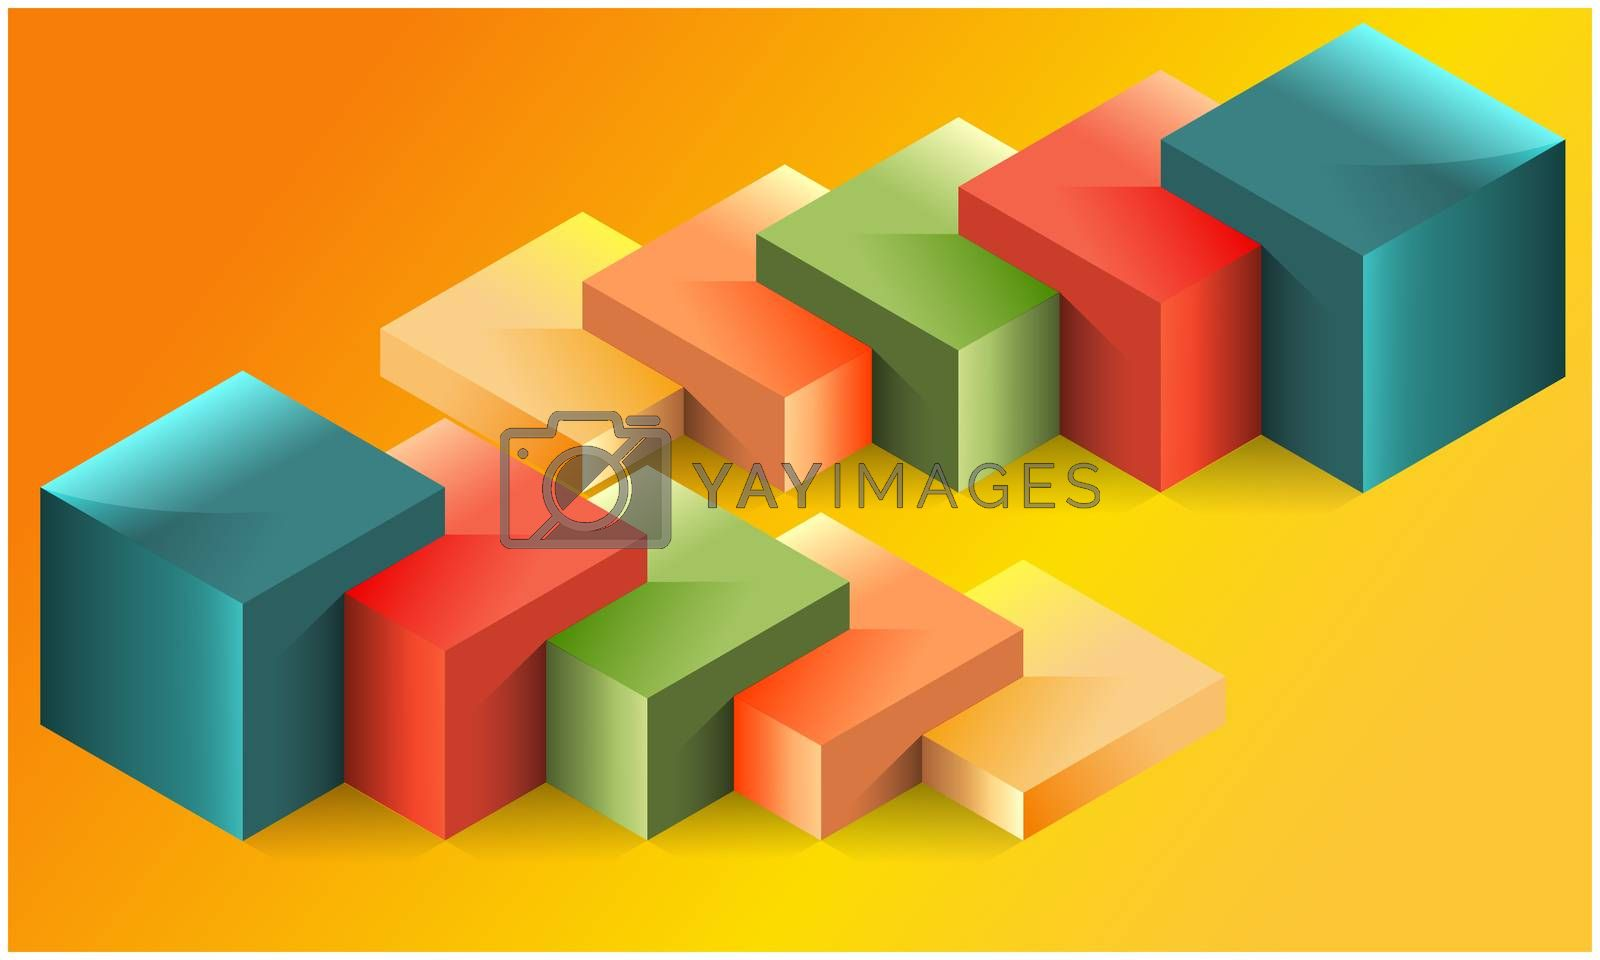 Royalty free image of digital textile design of inserted boxes on abstract background by aanavcreationsplus